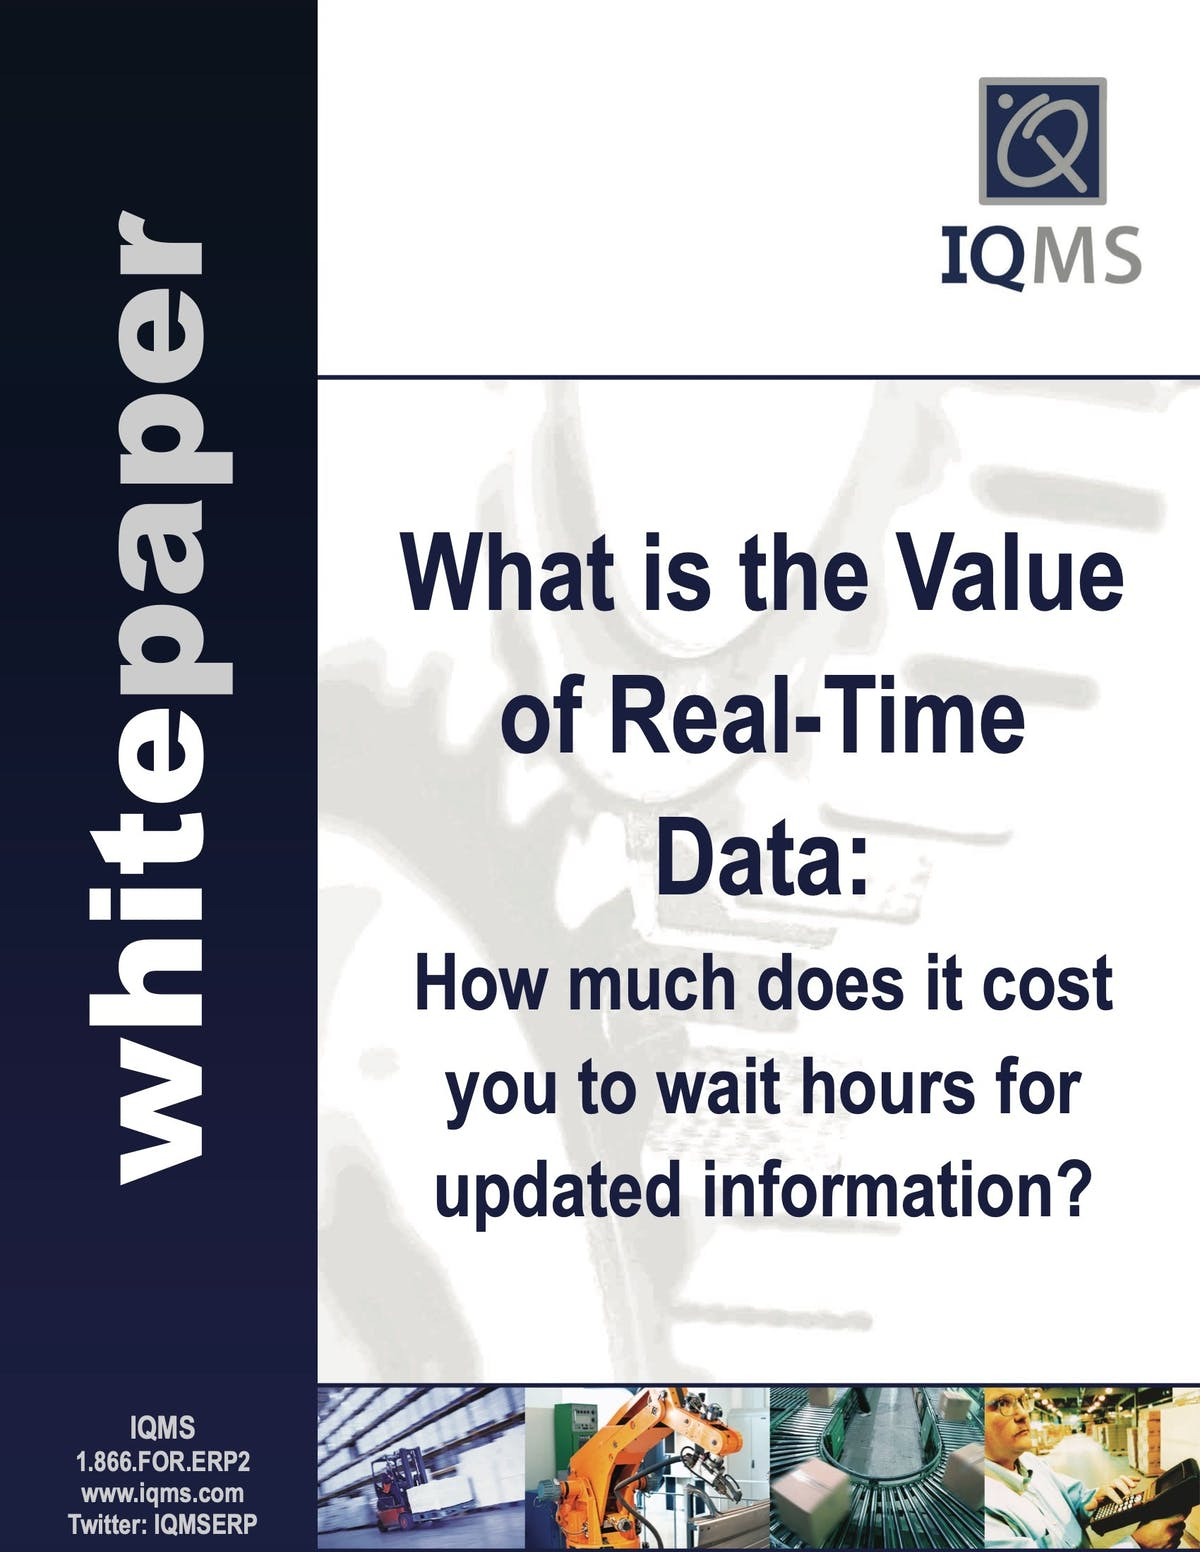 EnterpriseIQ White Paper - What is the Value of Real-Time Data